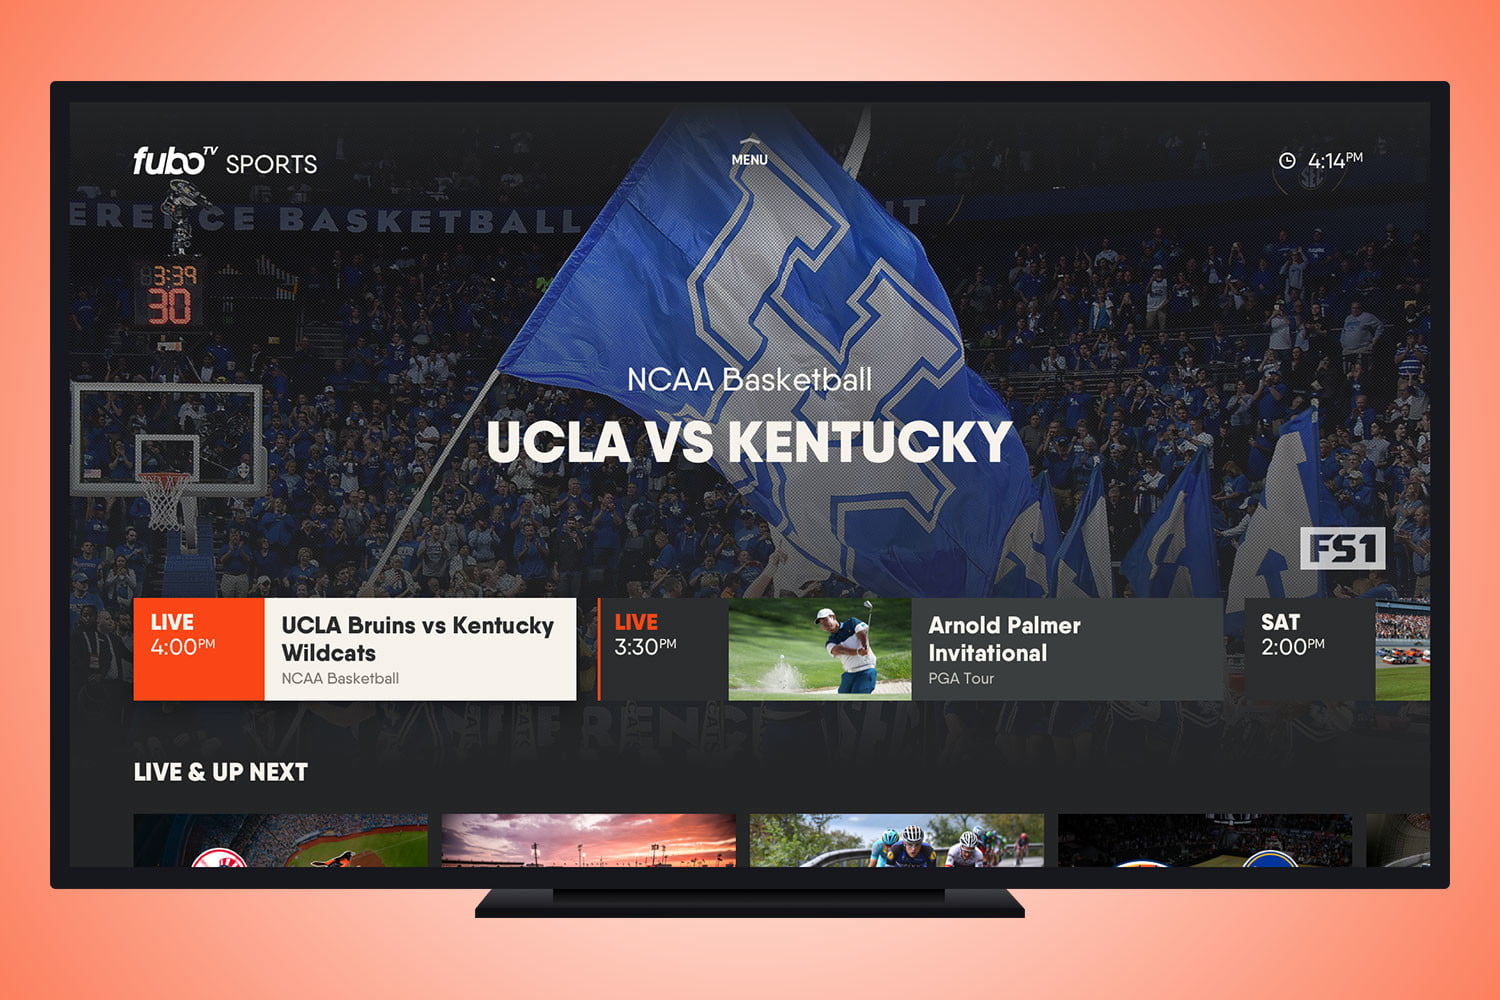 FuboTV: Everything You Need to Know About This Sports